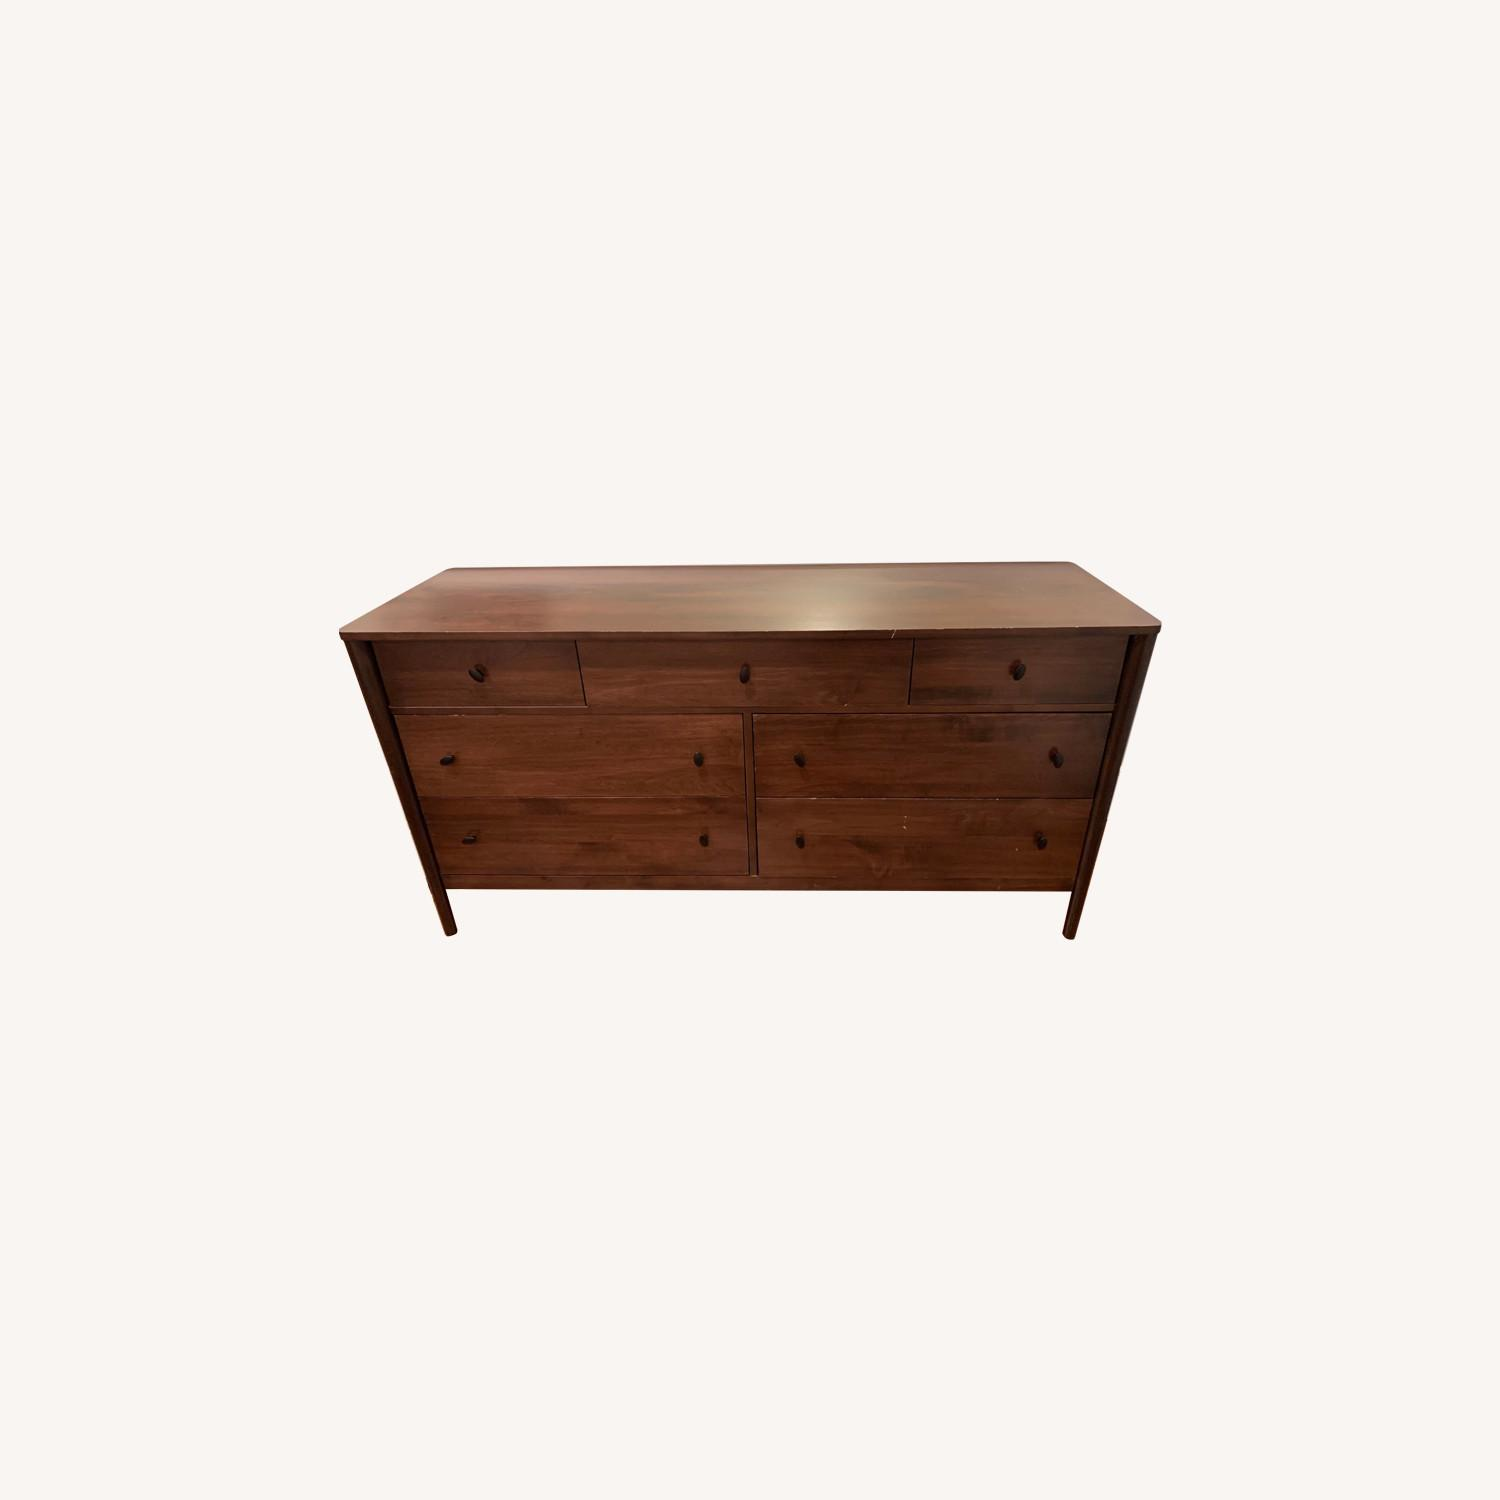 Crate & Barrel Gia 7-Drawer Dresser, Solid Maple - image-0